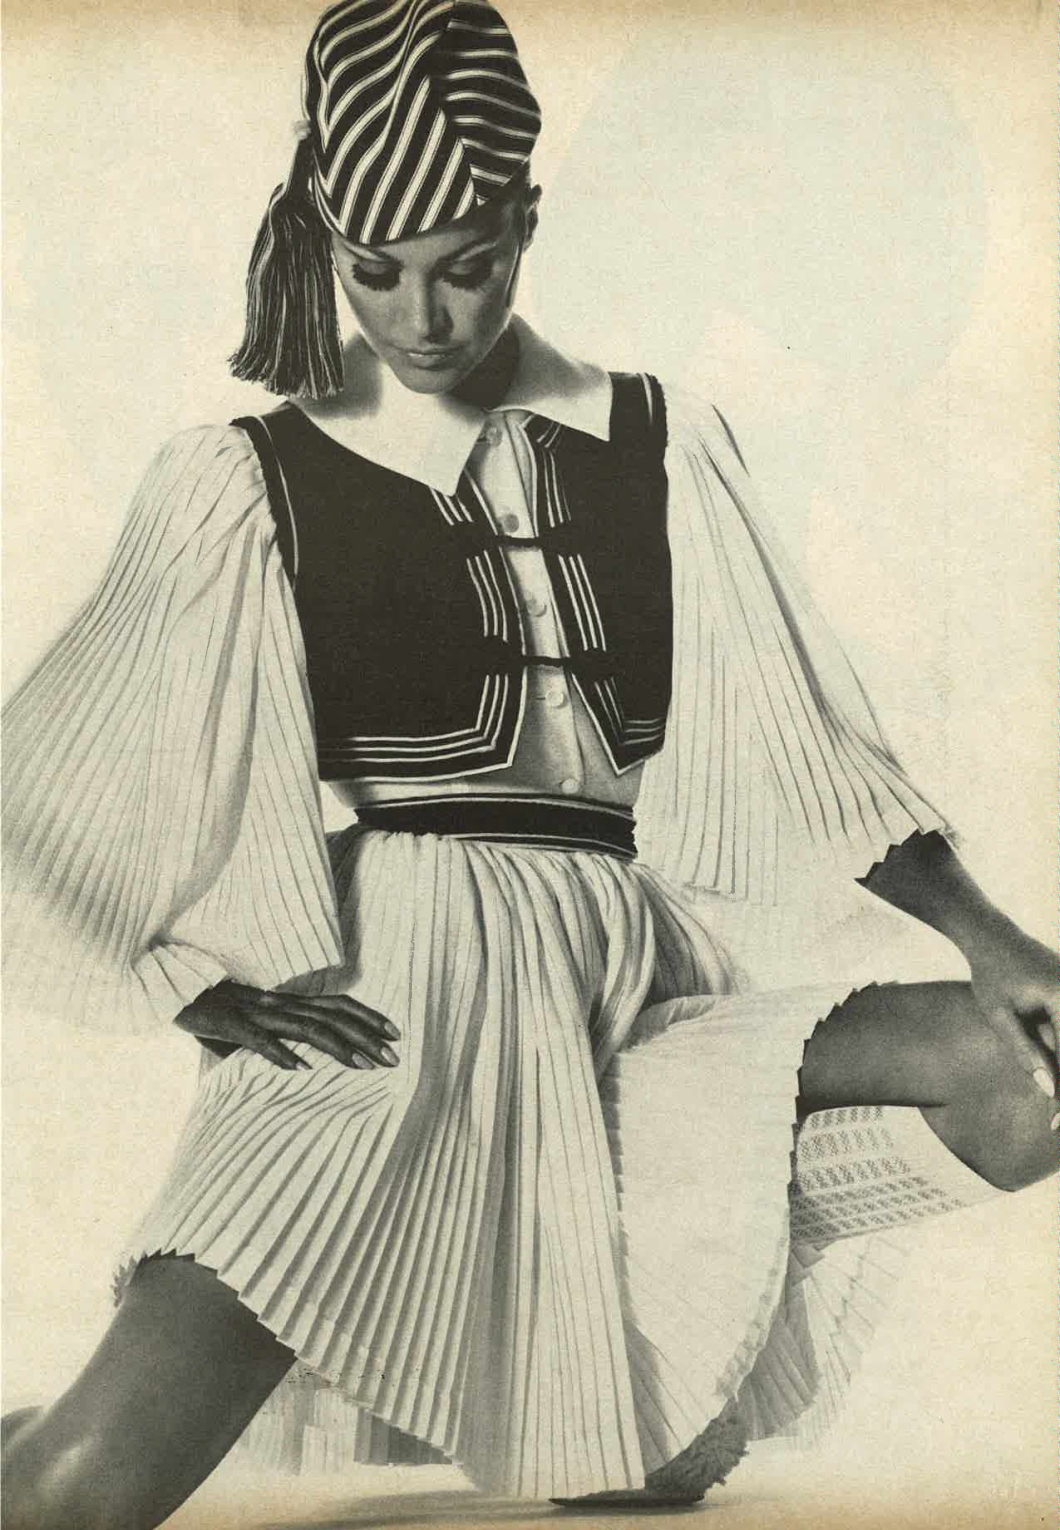 Vogue May 1968 Look Lively American Fashion is Out to Play Shot by Penn Irving